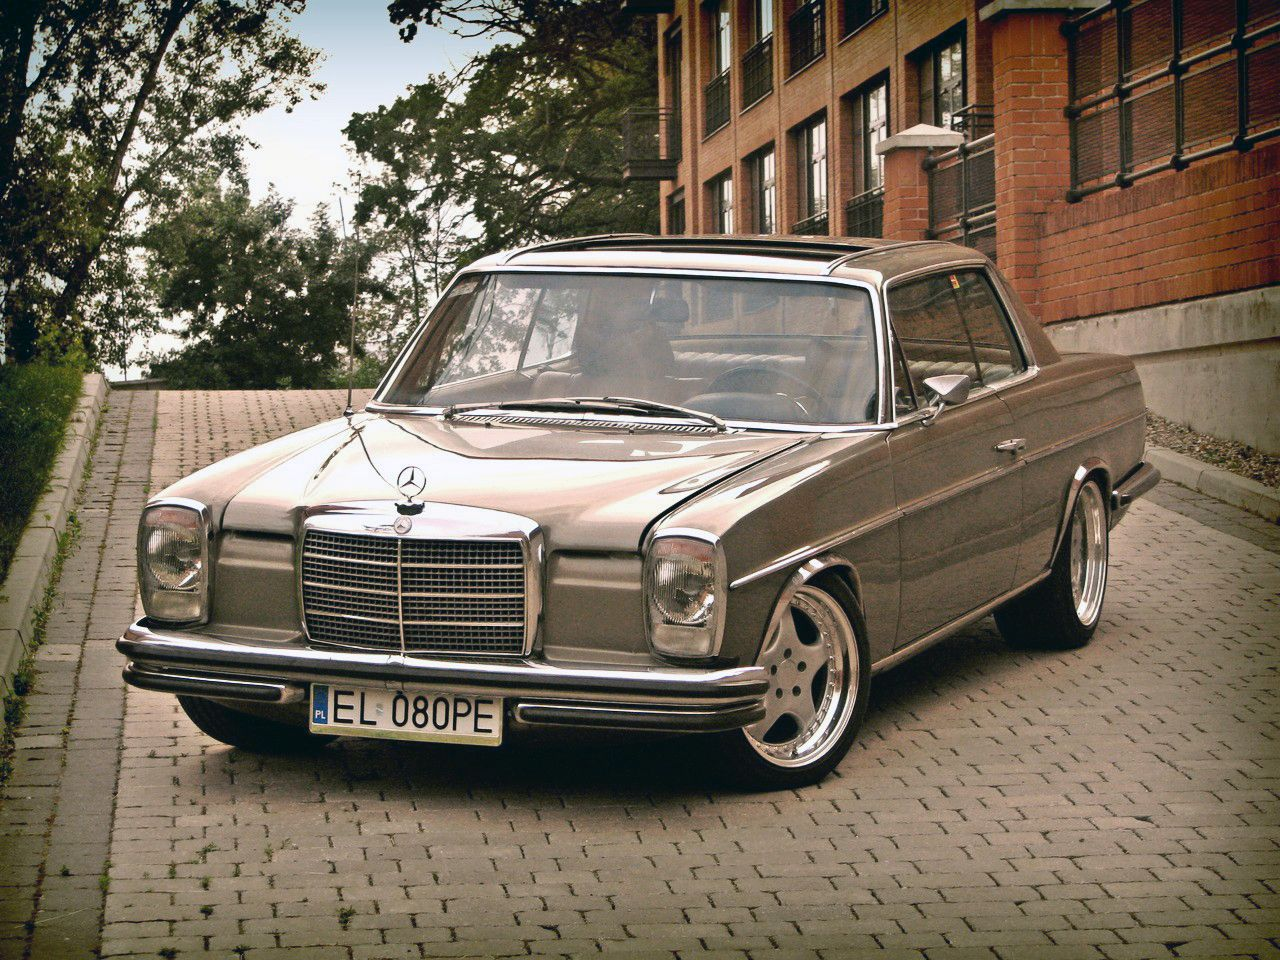 Mercedes Benz W114 Coupe With Images Mercedes Benz Old